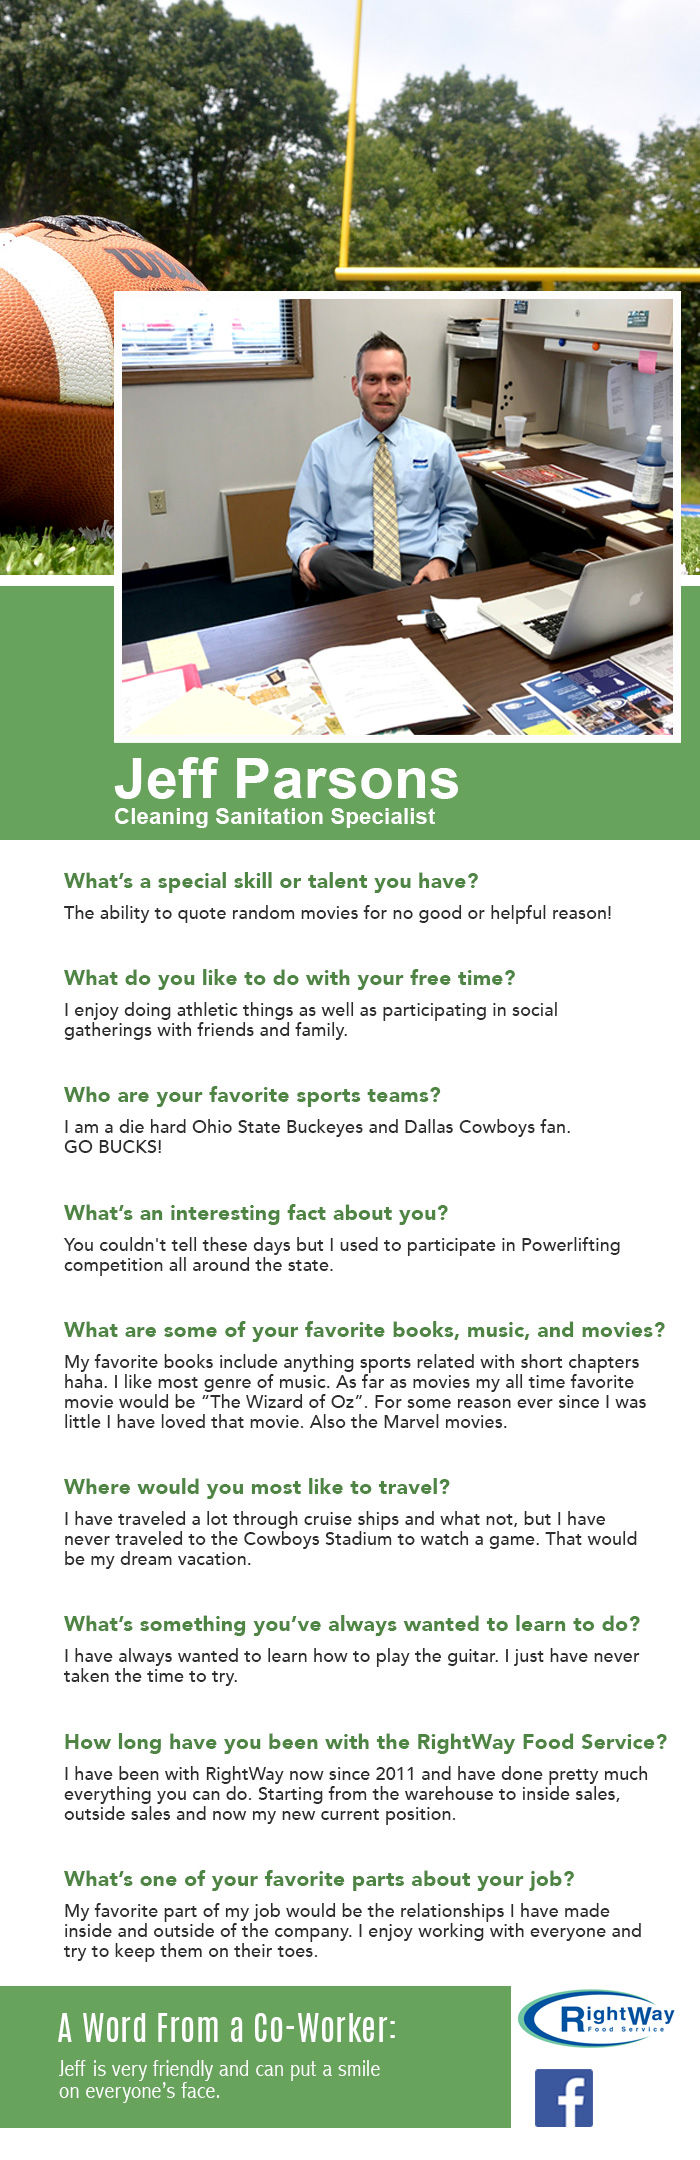 7-18 get to know Jeff Parsons